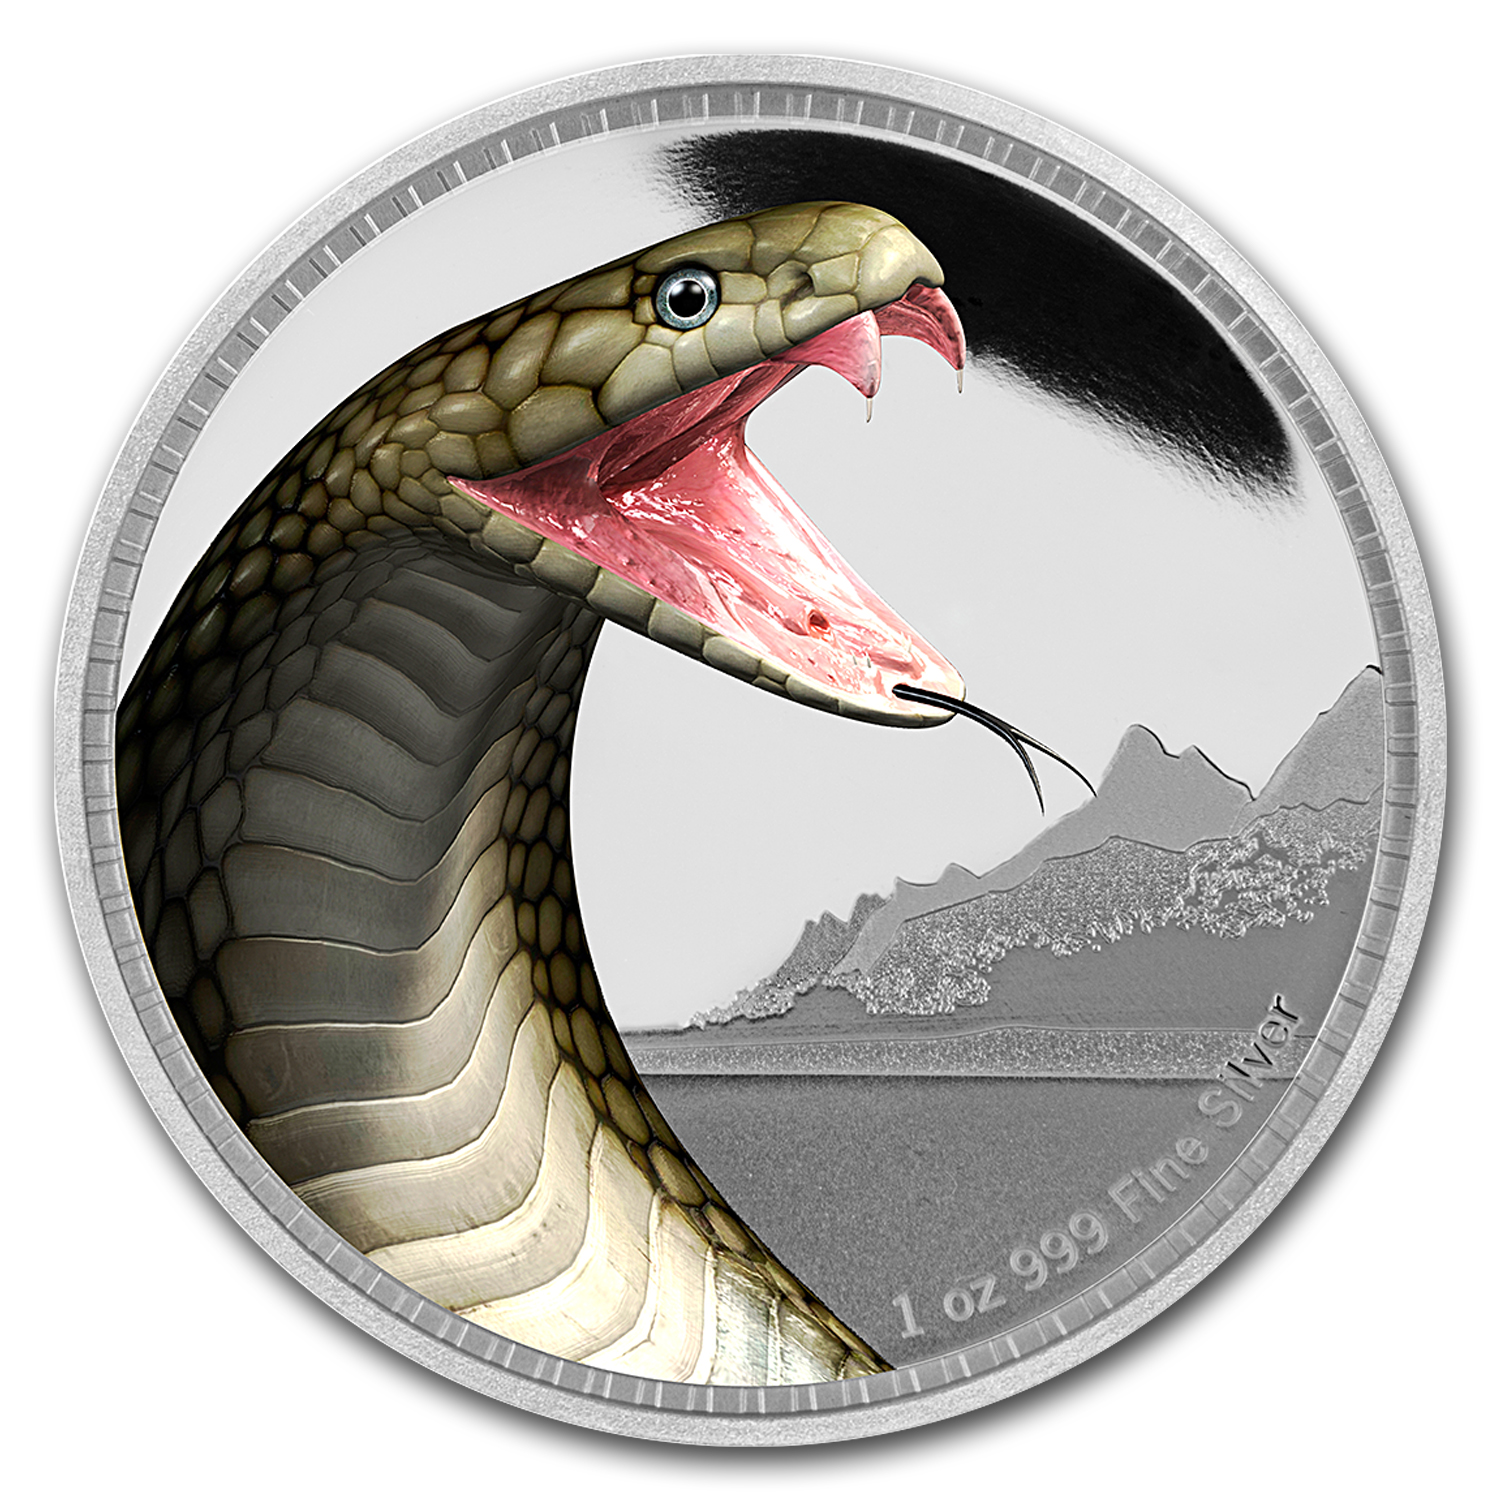 2016 Niue 1 oz Silver Kings of Continents King Cobra